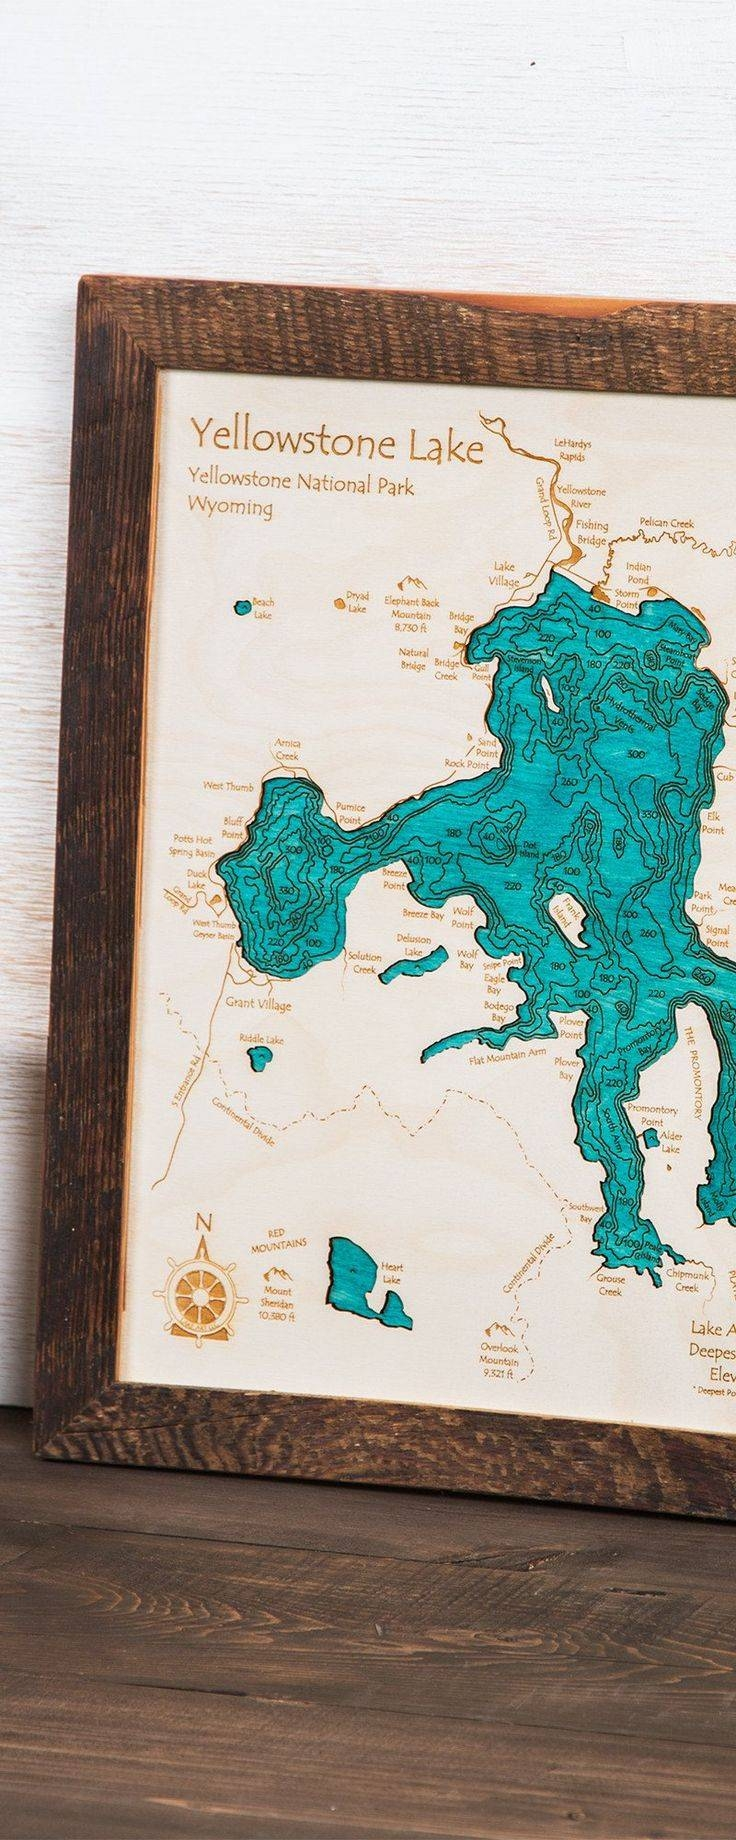 30 Best Map Art Images On Pinterest | Map Art, Baltic Birch And Intended For Recent Lake Map Wall Art (View 1 of 20)